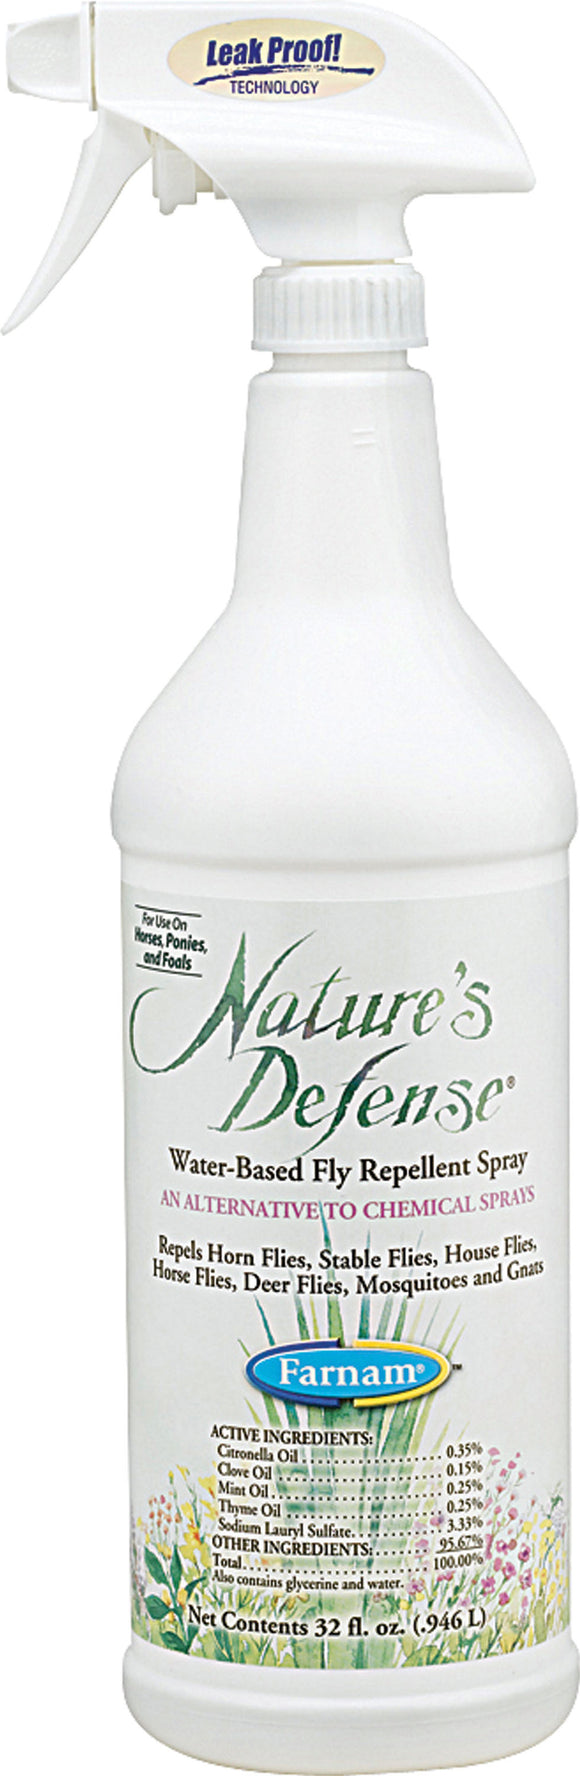 Farnam Companies Inc - Nature Defense Concentrate Fly Repellent Spray